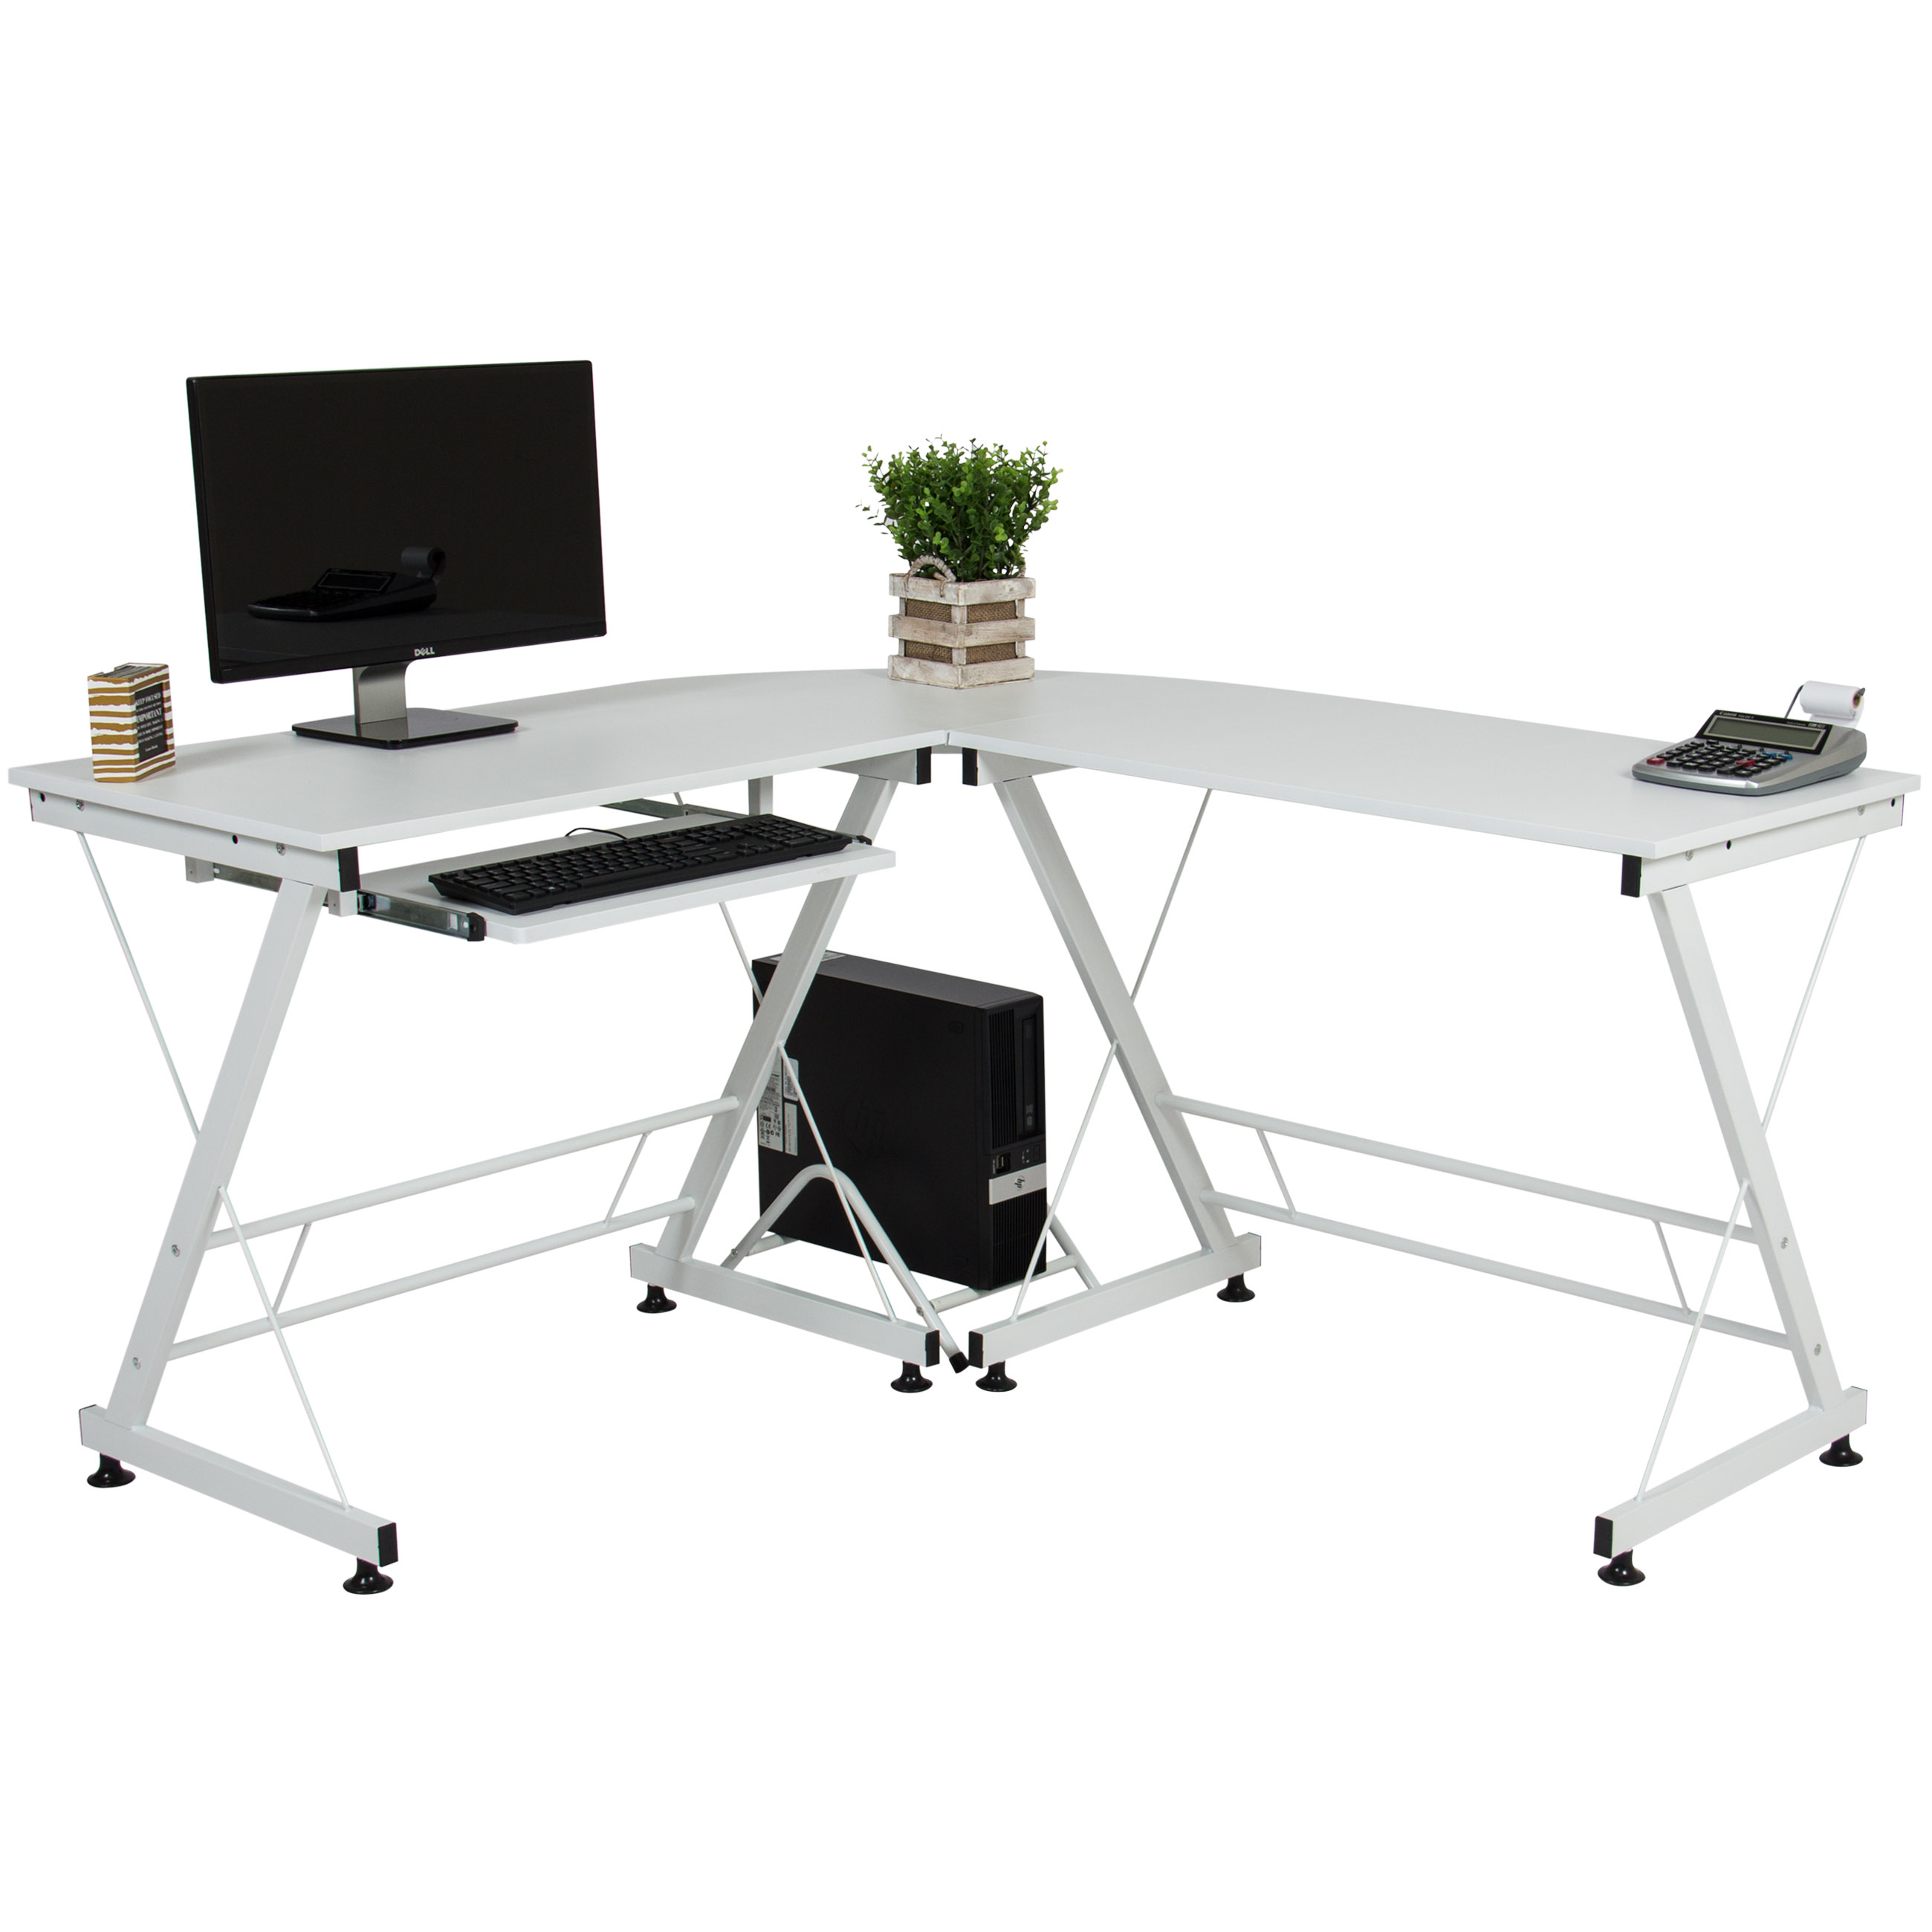 Best Choice Products Wood L-Shape Corner Computer Desk PC Laptop Table Workstation Home Office - White